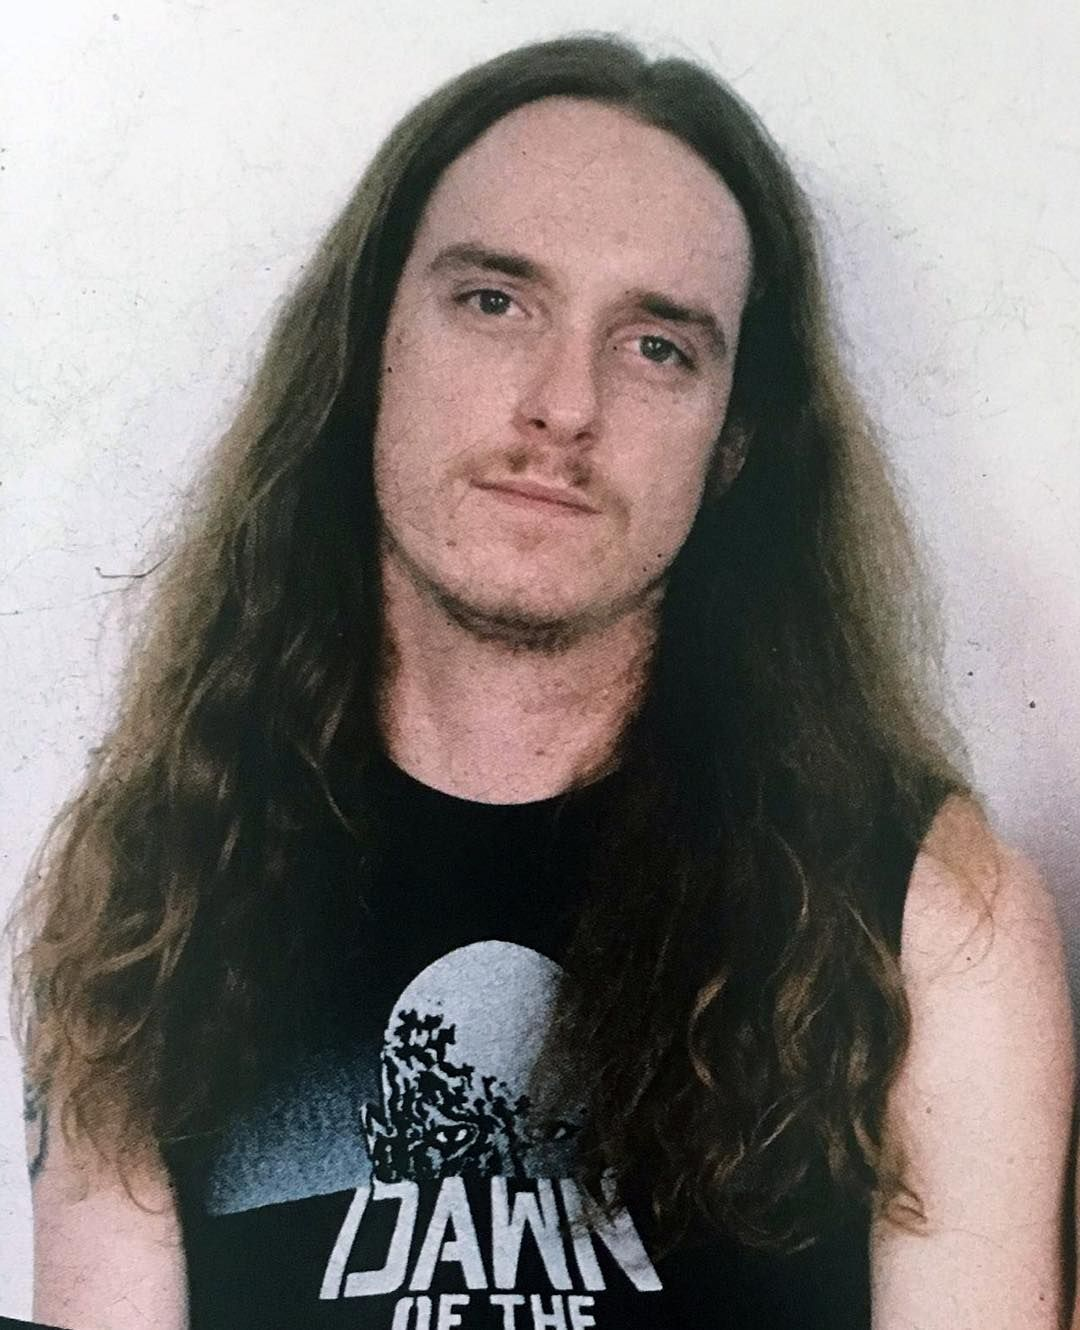 407 Likes, 2 Comments - Clifford Lee Burton (@cliff ...